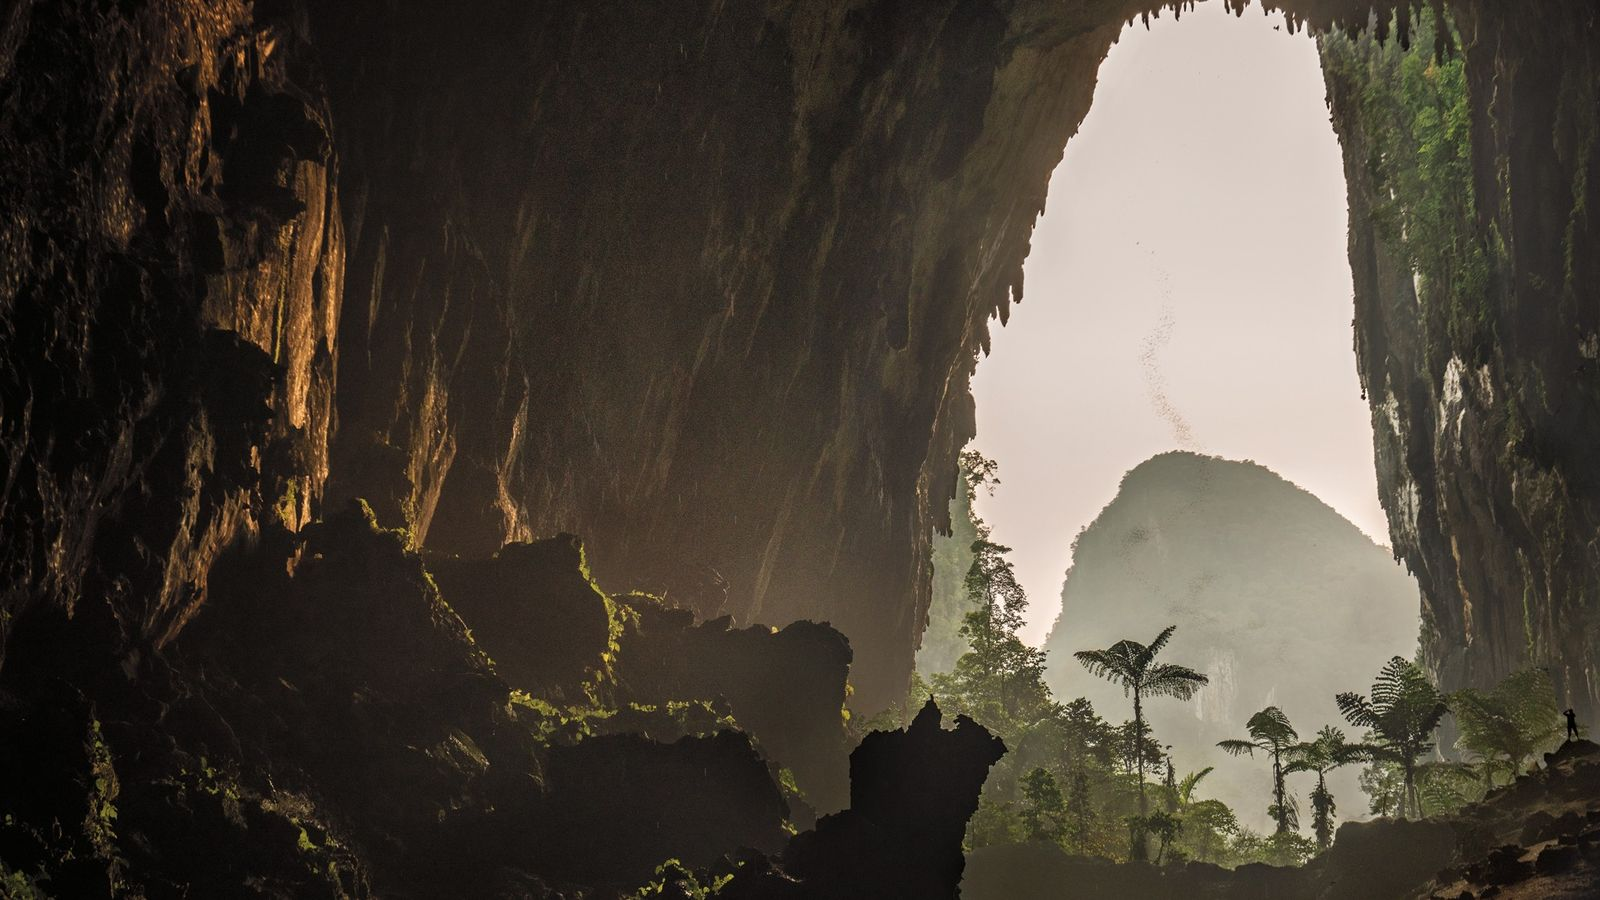 At dusk, a swarm of bats disperses to hunt in the rainforest surrounding Deer Cave. One ...